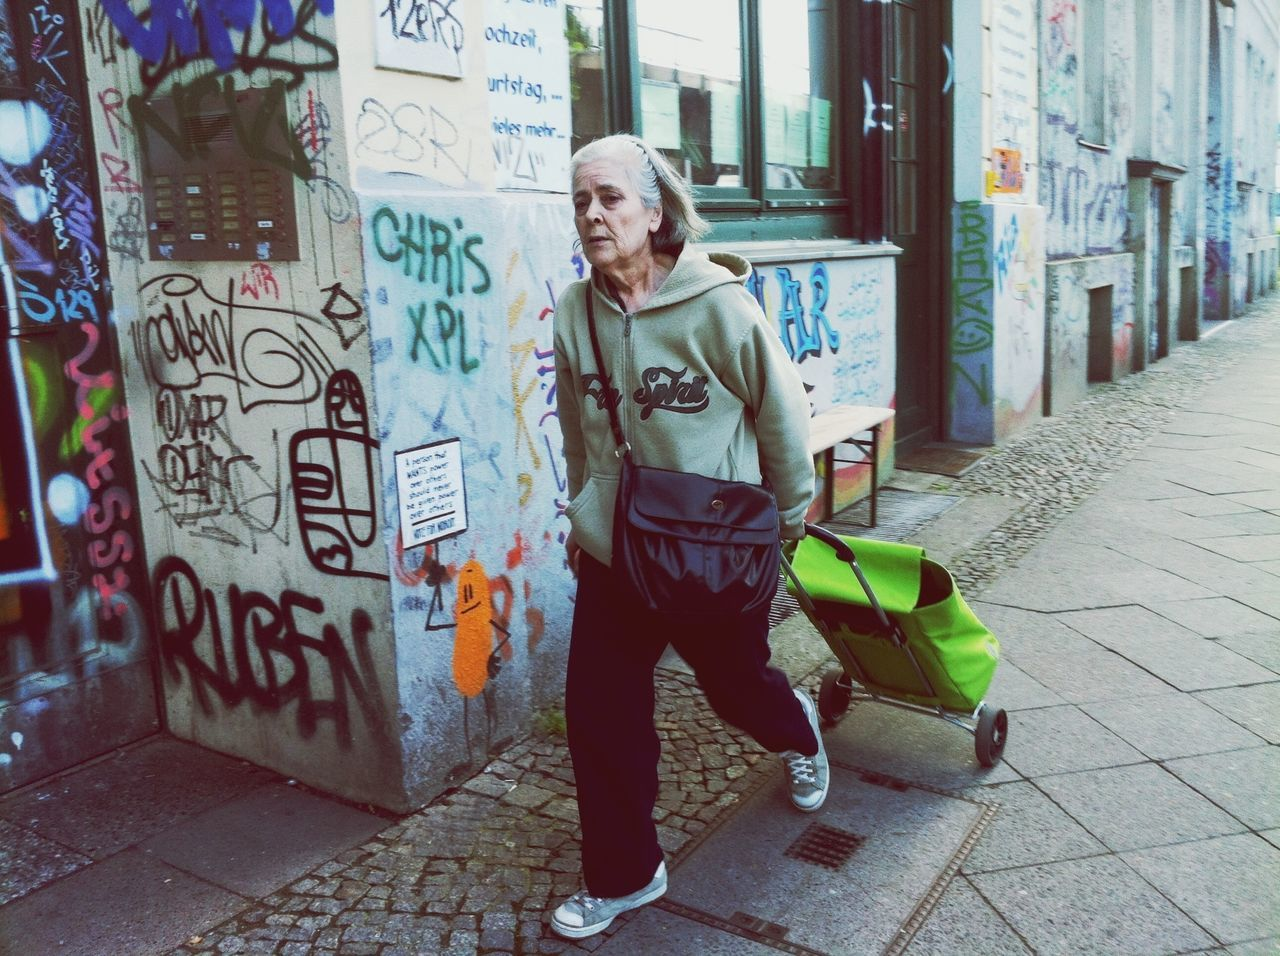 real people, full length, graffiti, one person, senior adult, architecture, casual clothing, outdoors, lifestyles, text, front view, built structure, senior women, day, building exterior, standing, leisure activity, adult, people